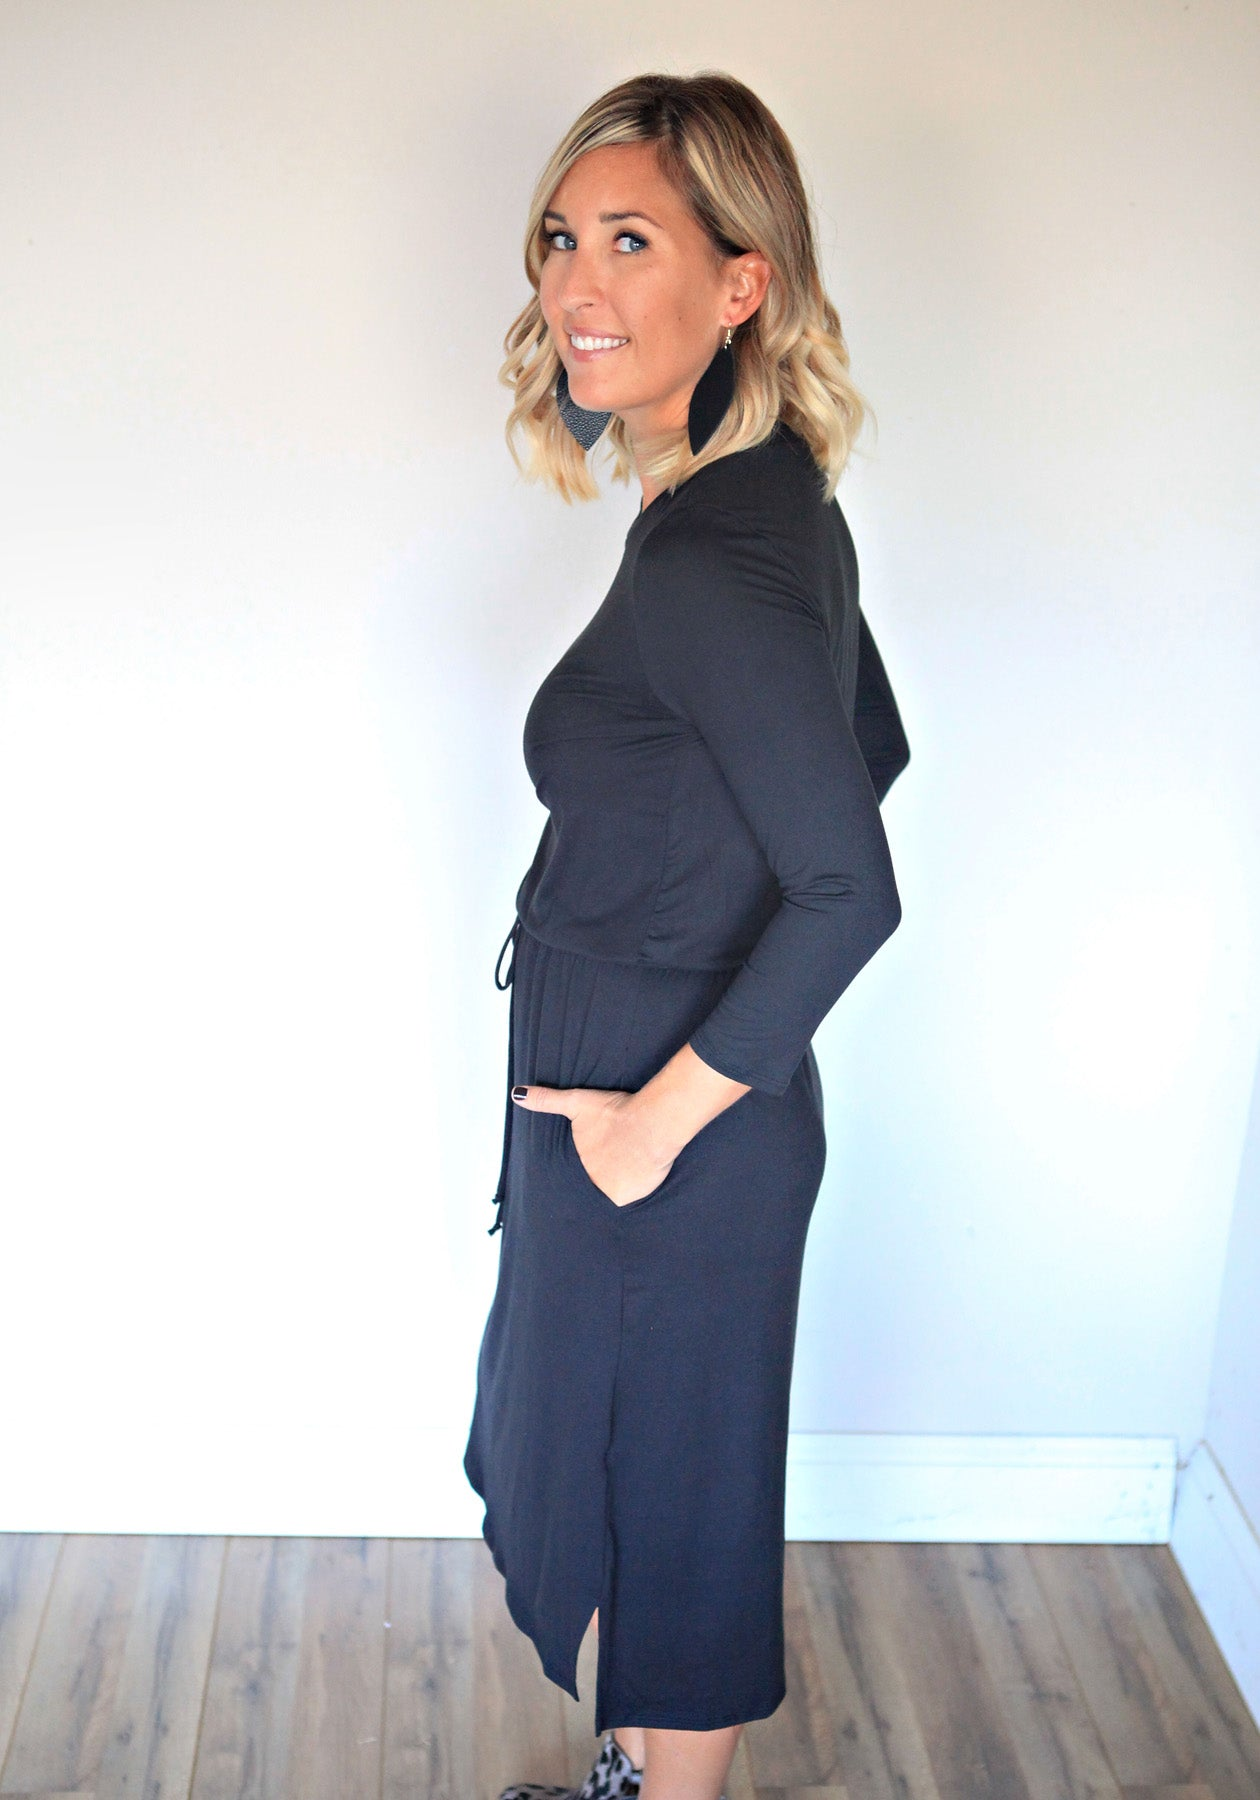 Brittany Dress - Black - Gray Monroe